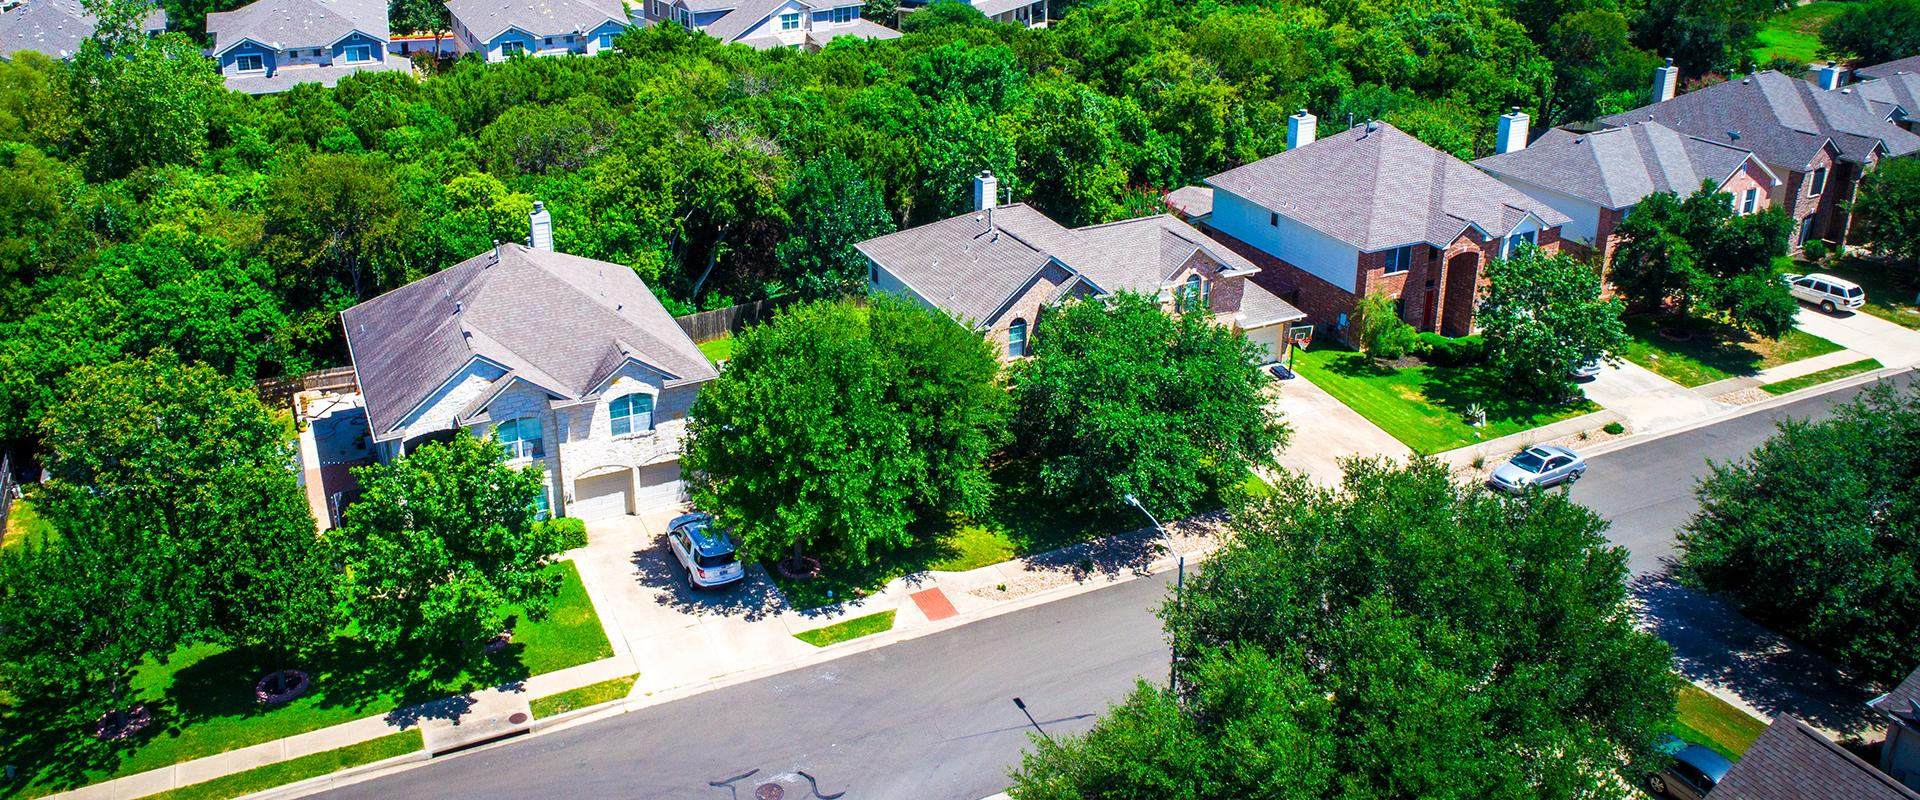 aerial view of houses on street in tarrant county texas